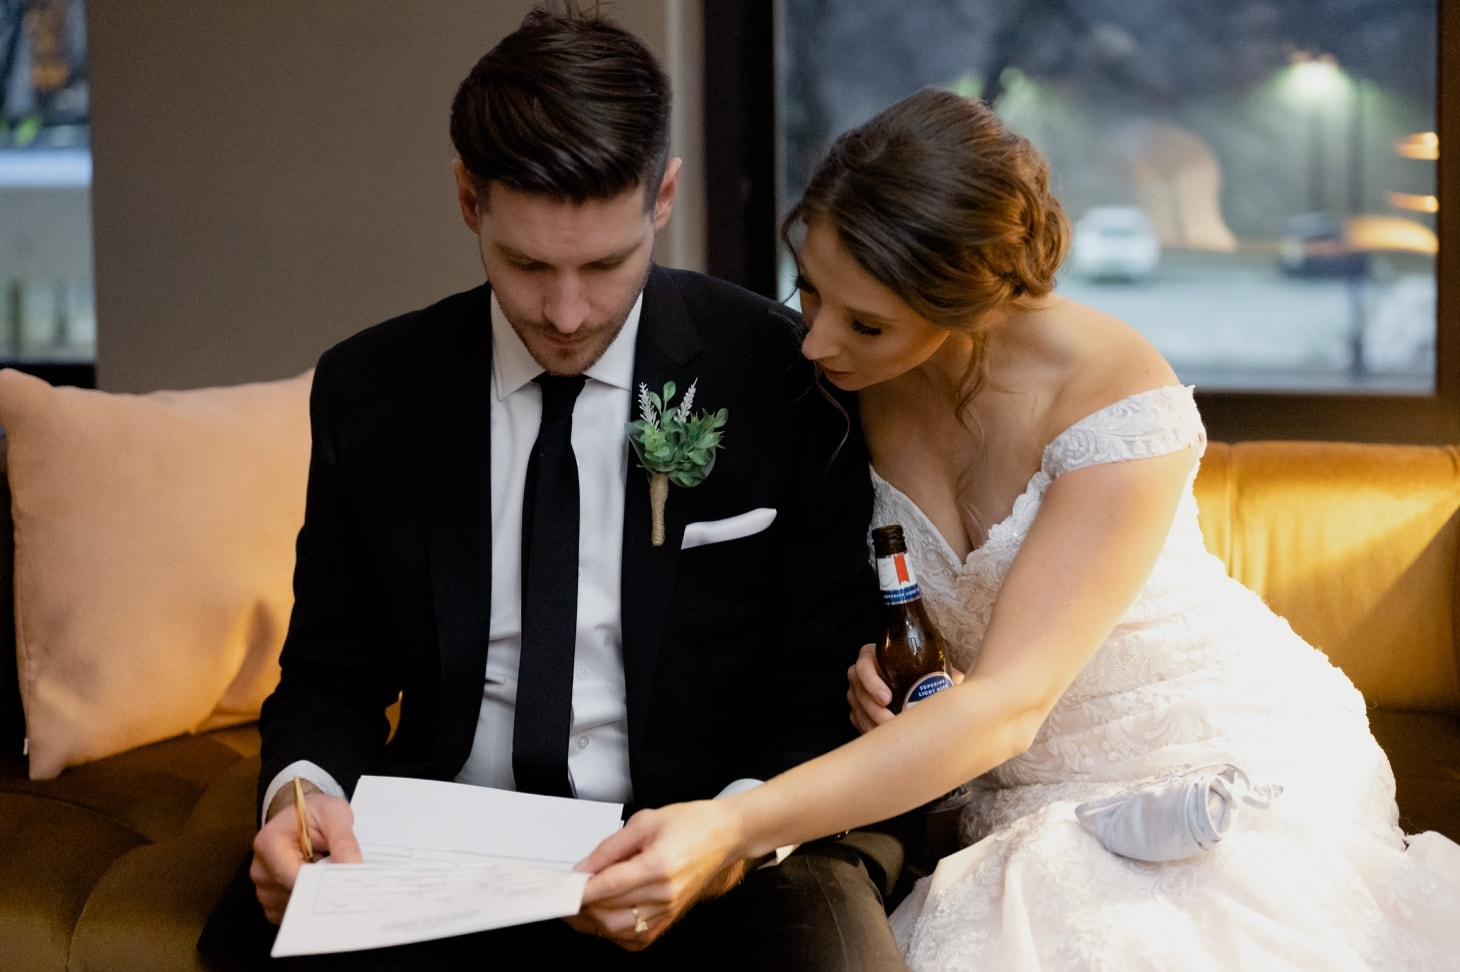 Signing your marriage license